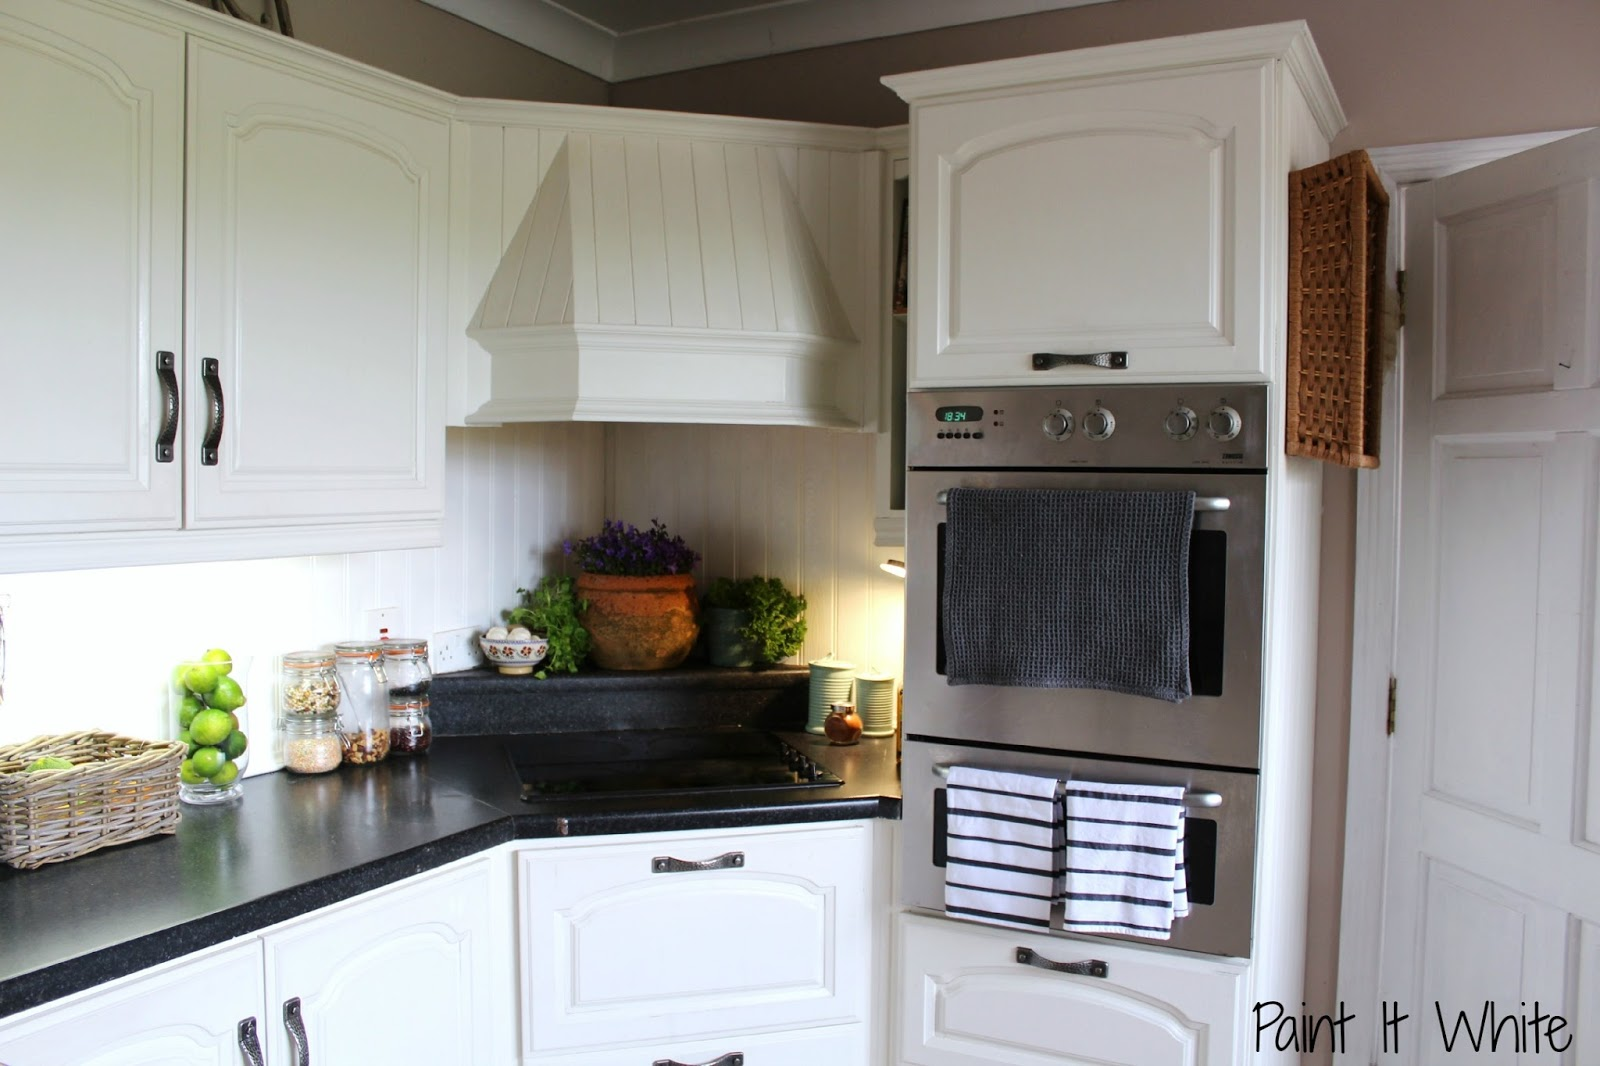 Wonderful 14 Annie Sloan Chalk Paint In Old White Wood Kitchen Cabinet Update, Rustic  Accents For Images